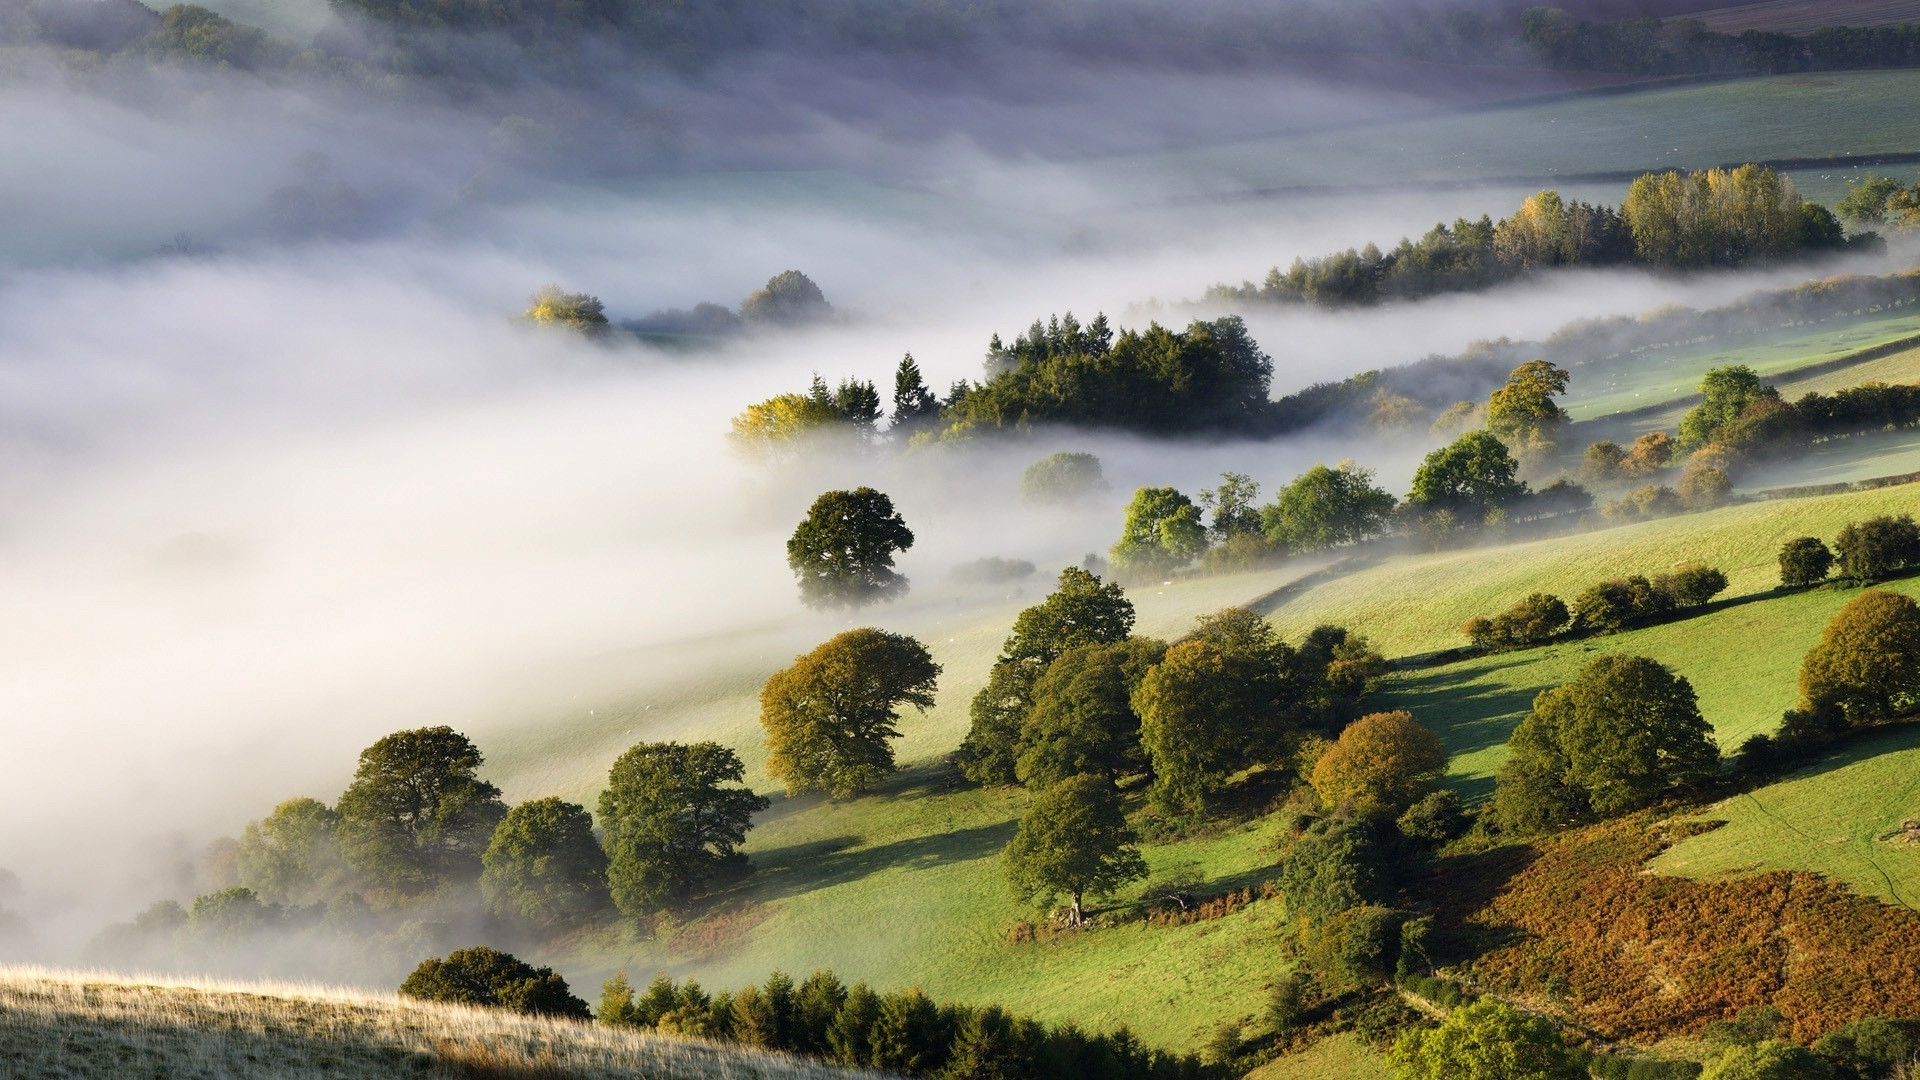 Meadow, trees, greens, fog